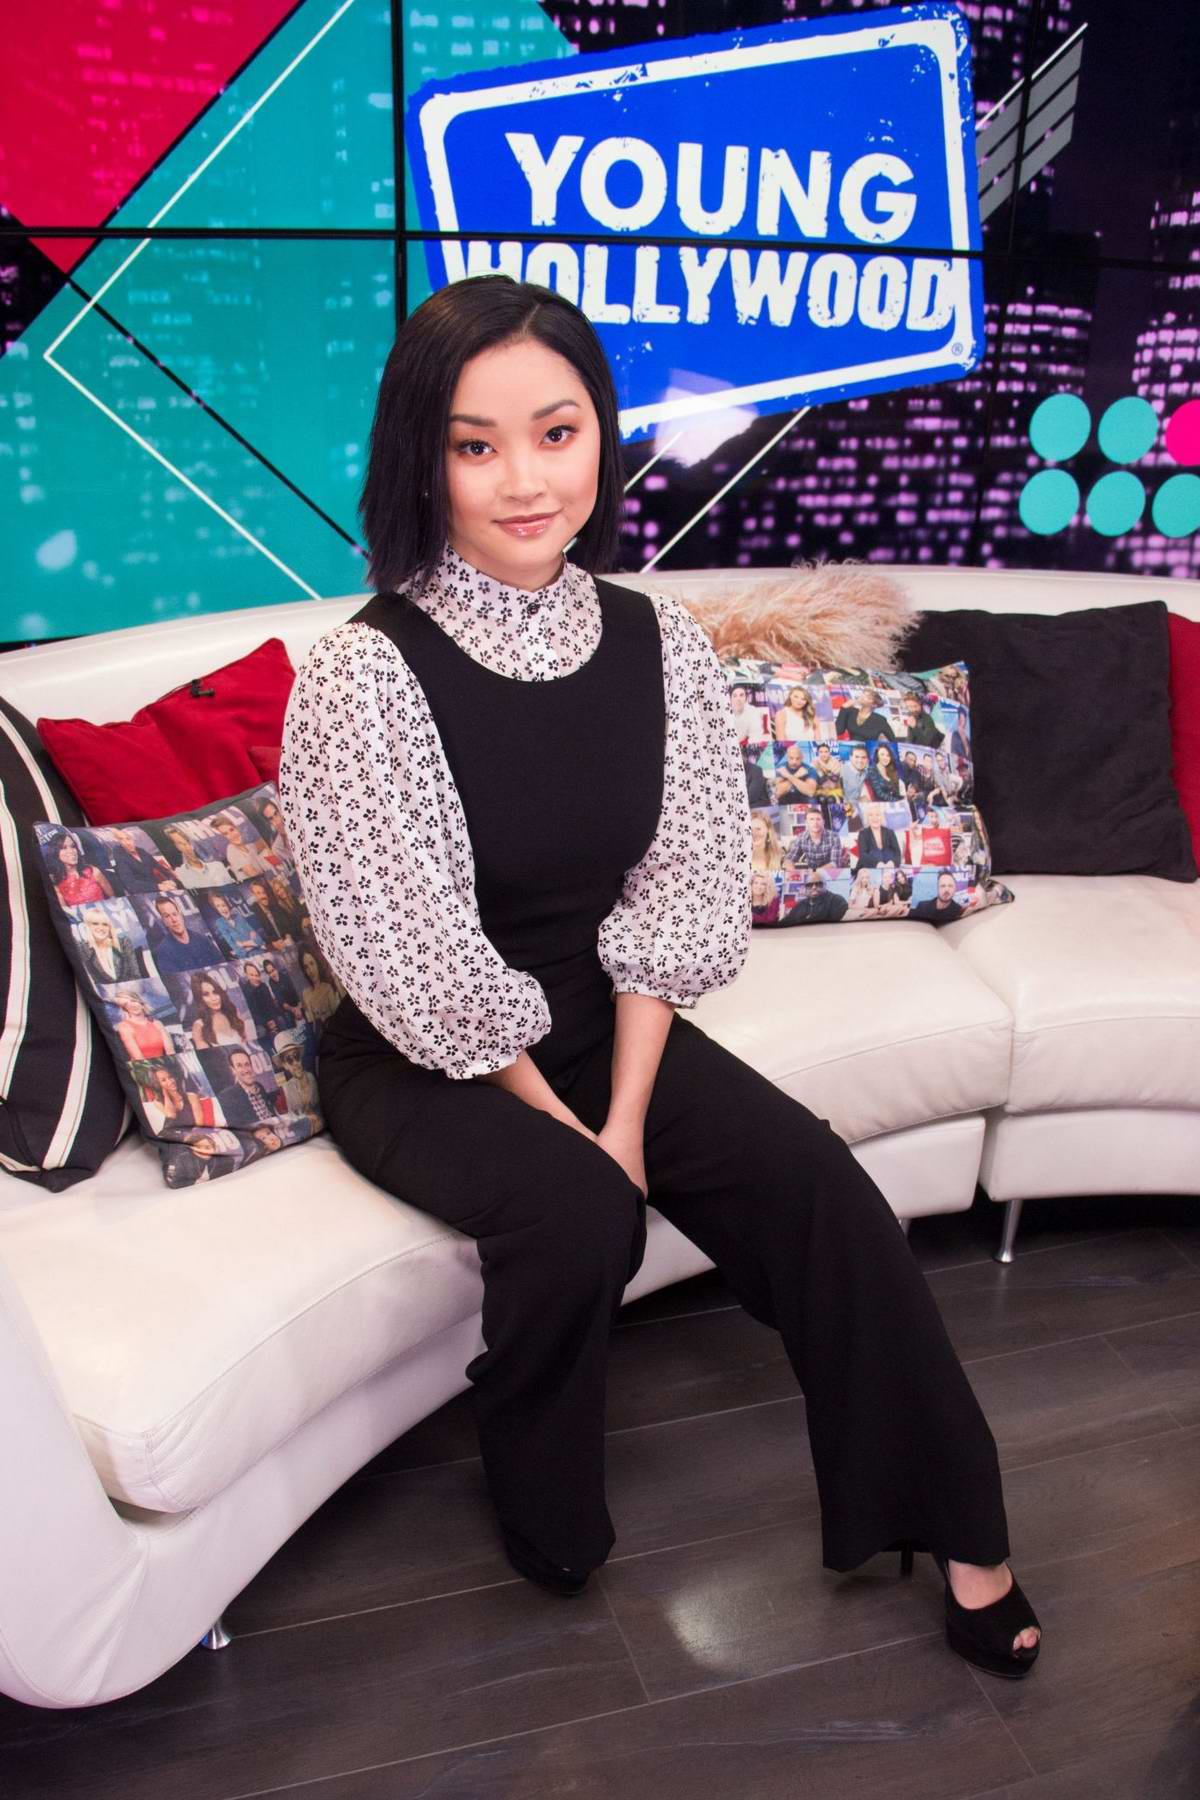 Lana Condor visits the 'Young Hollywood' Studio in Los Angeles